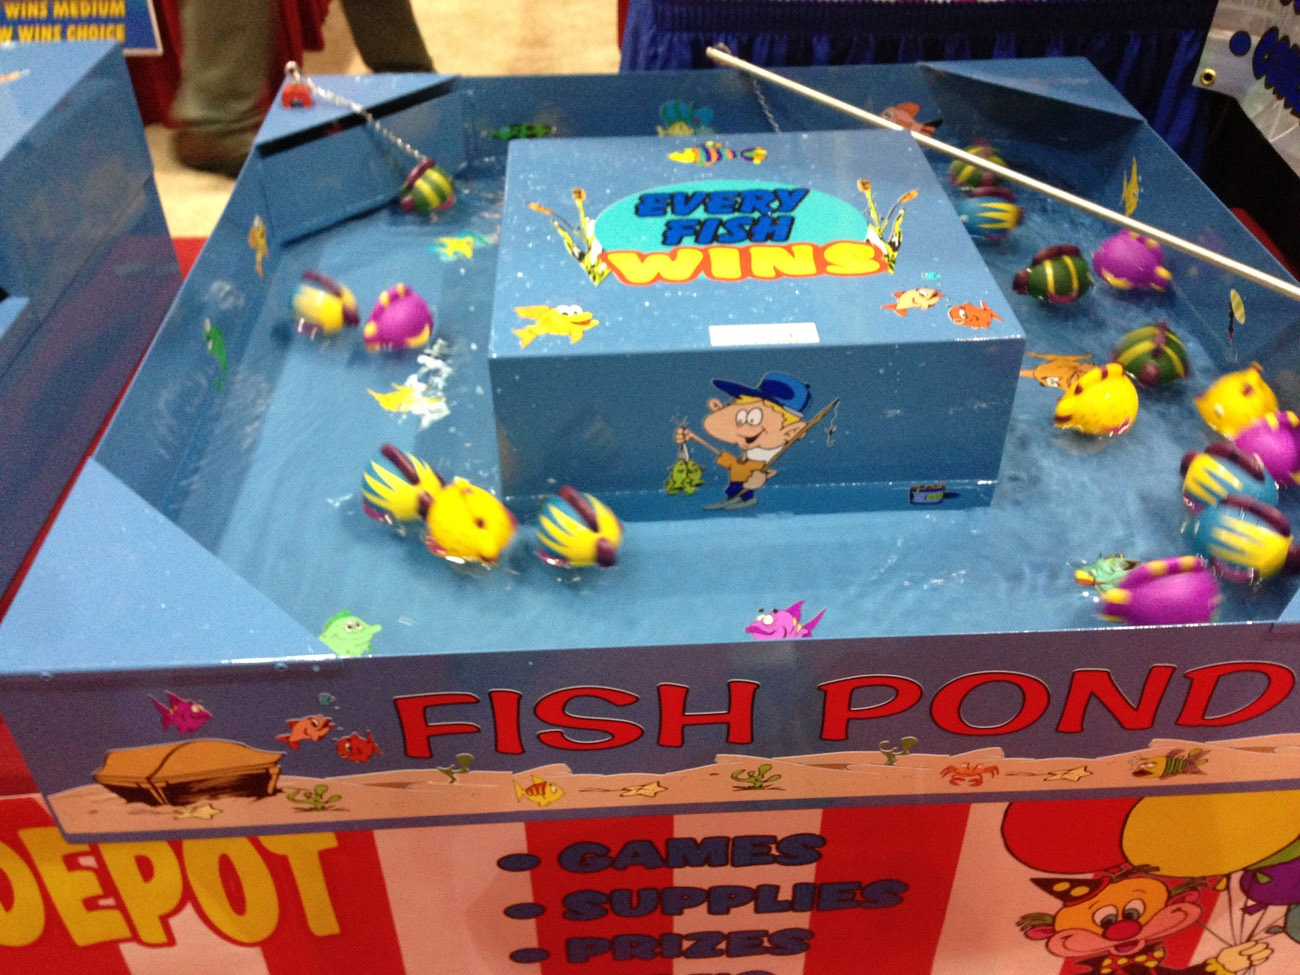 Fish pond water game lets party for Fish pond game